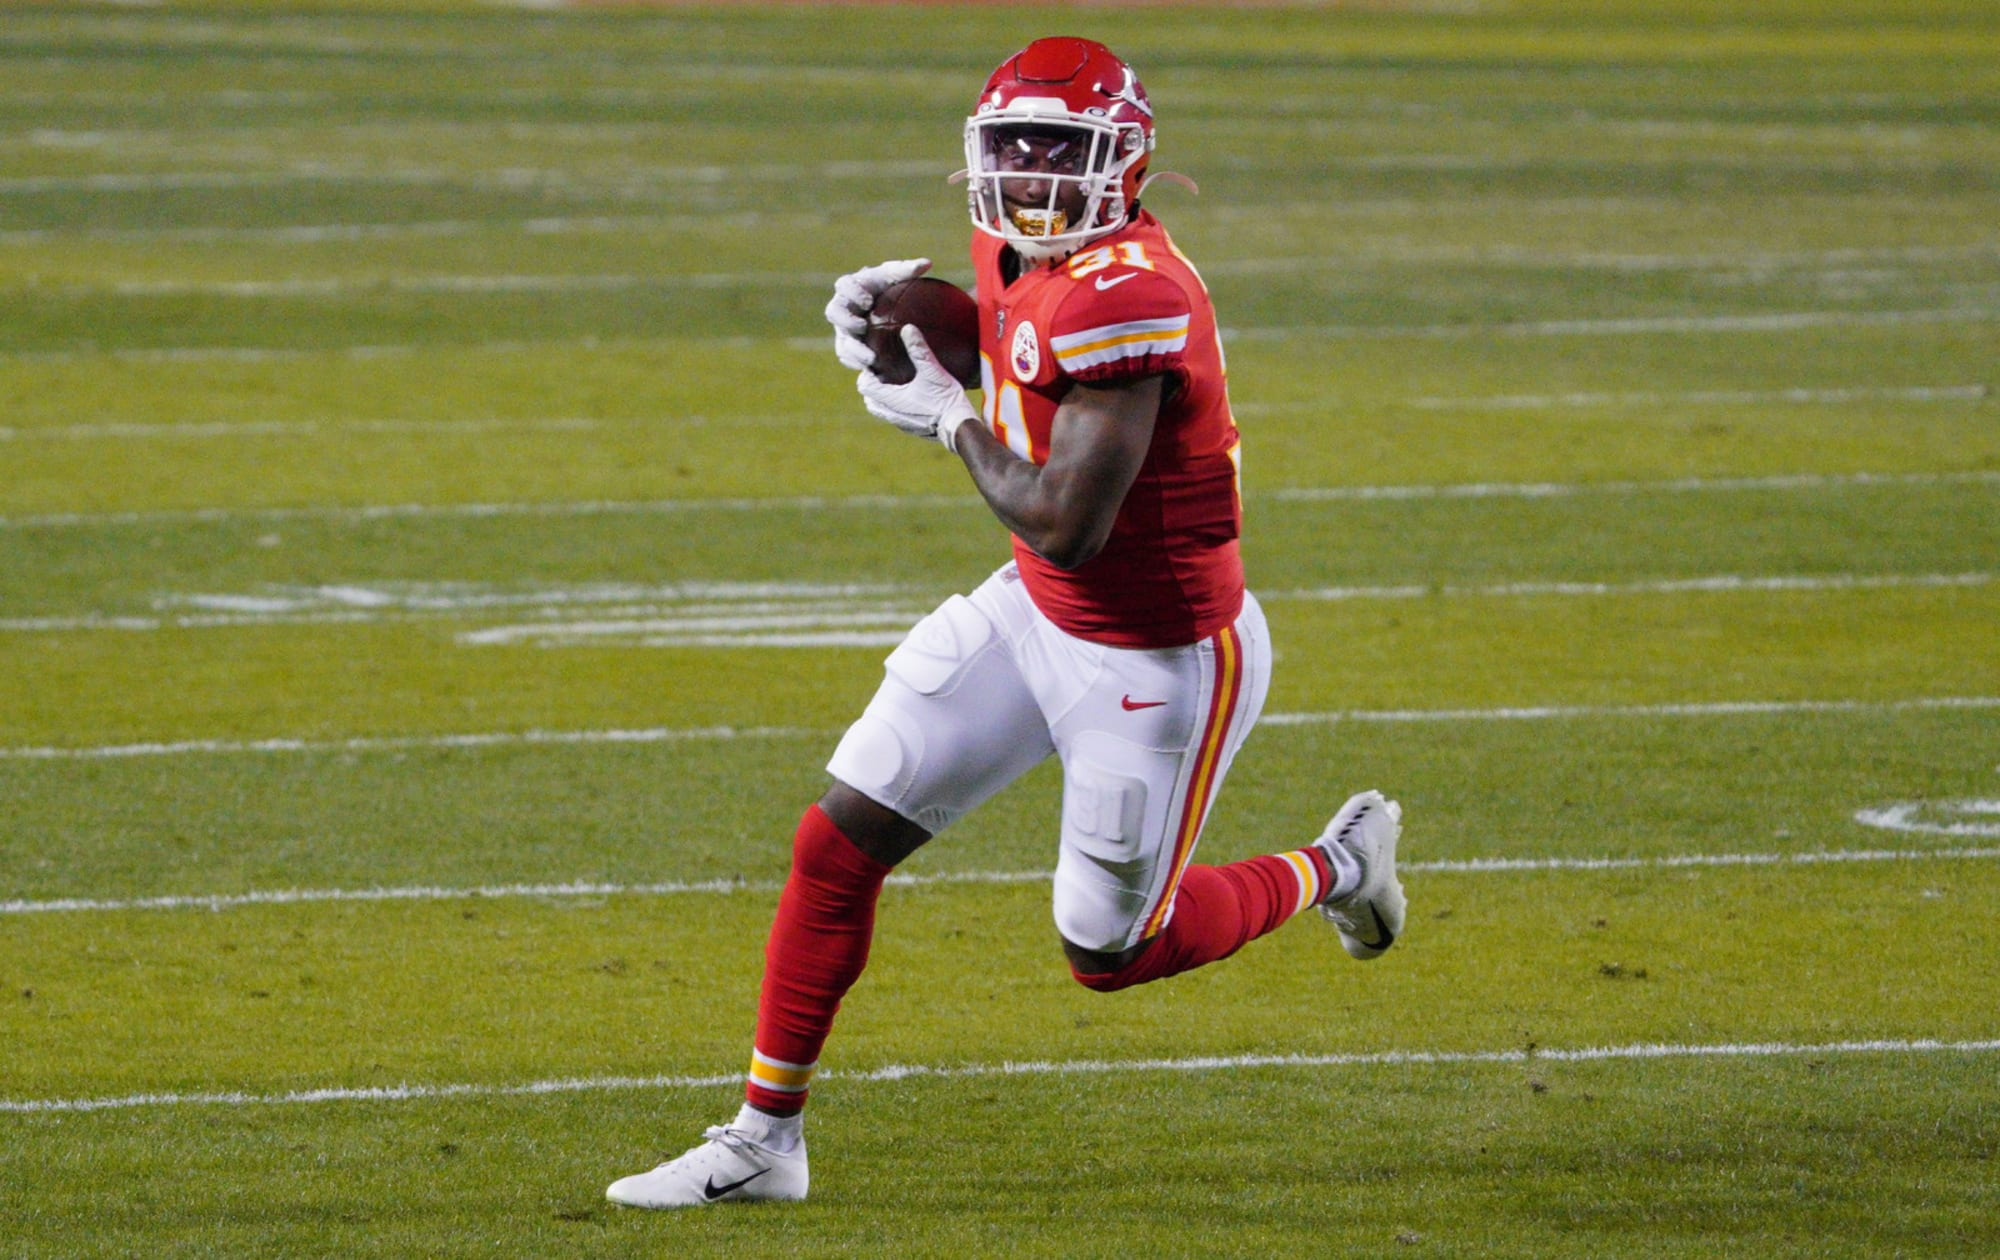 Chiefs running backs proved pivotal in previous Super Bowl and need to do it again